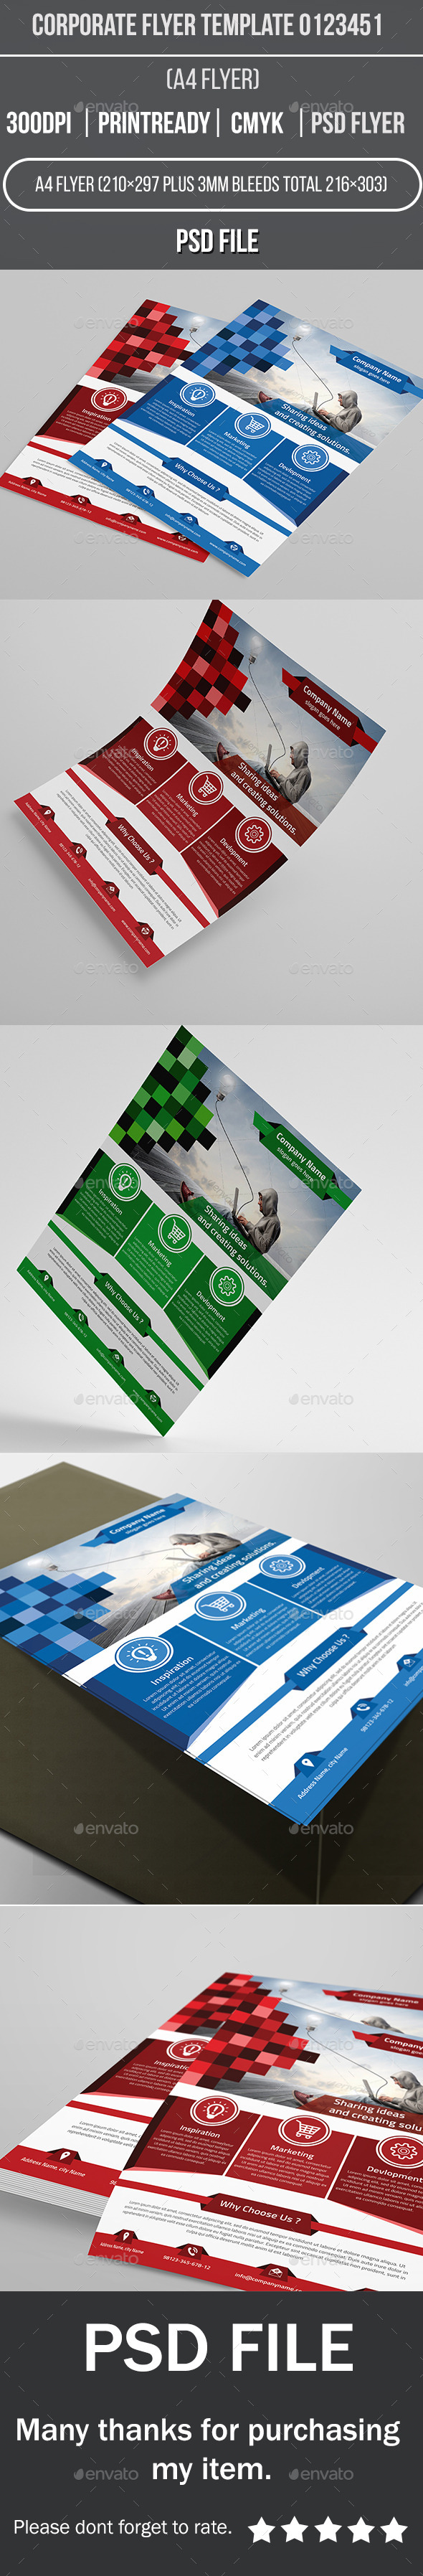 GraphicRiver Corporate Flyer Template 0123451 11012361